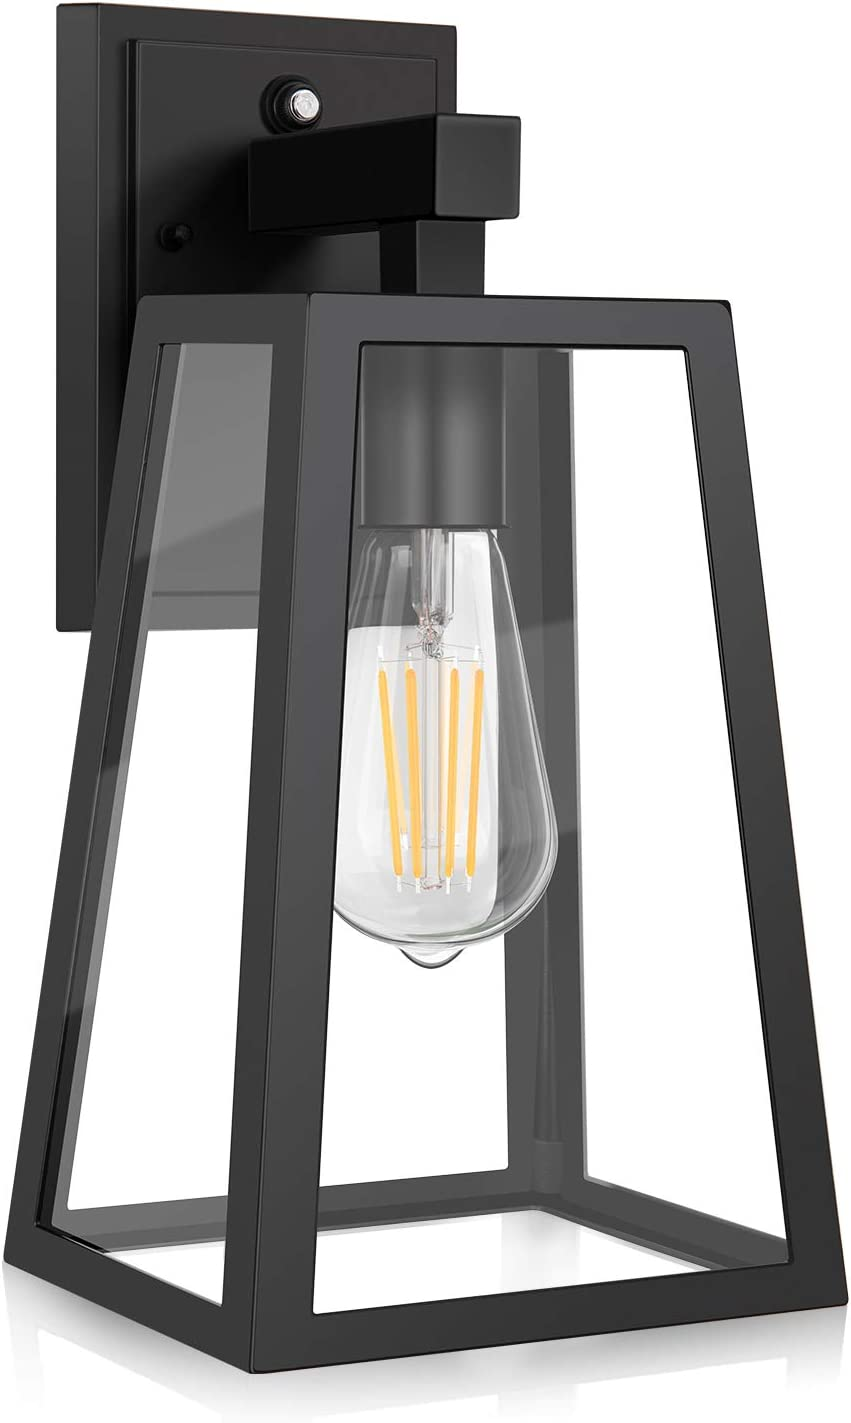 Dusk To Dawn Outdoor Wall Lantern Exterior Wall Sconce Fixture With E26 Base Led Bulb Anti Rust Waterproof Matte Black Wall Lamp Clear Glass For Garage Doorway Porch Garden Courtyard